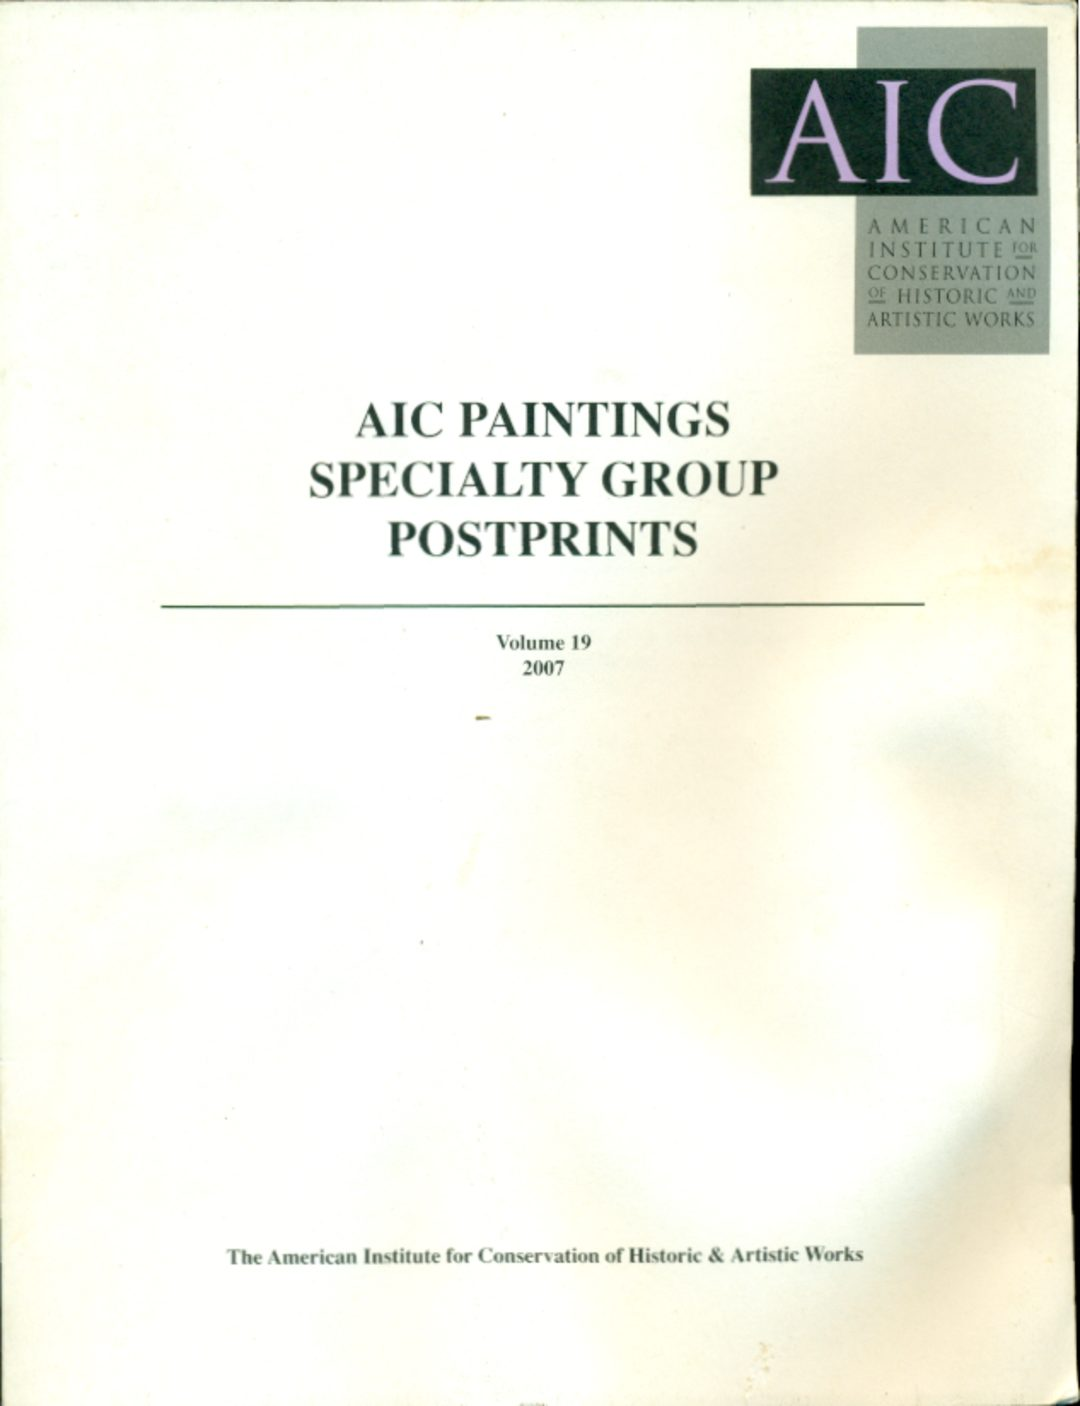 http://cbccoop.it/app/uploads/2017/06/COP-AIC-Postprints-Fen.-Deter.-pdf.jpg